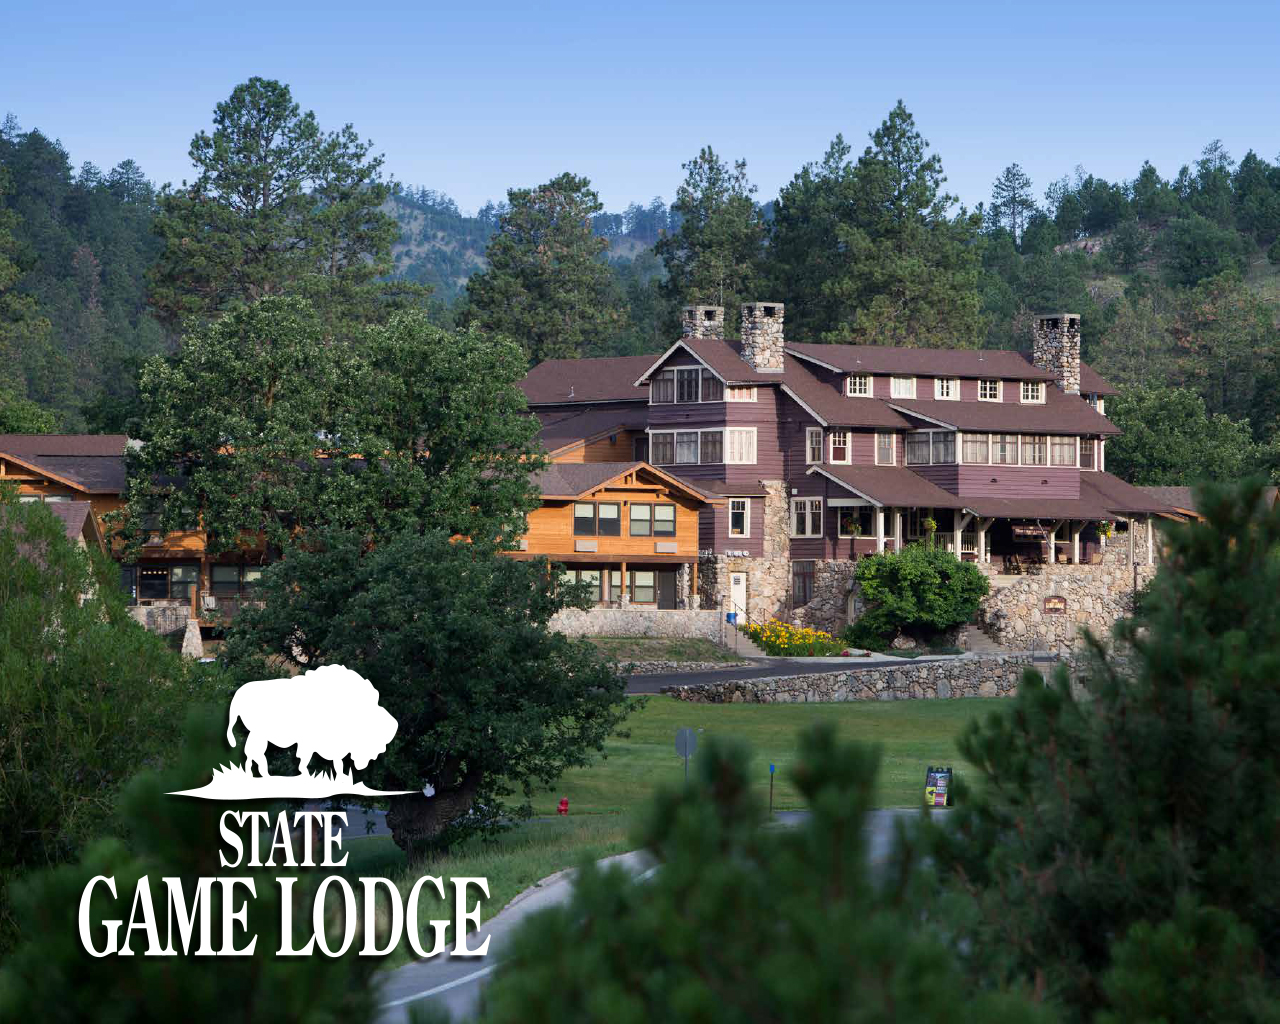 State Game Lodge